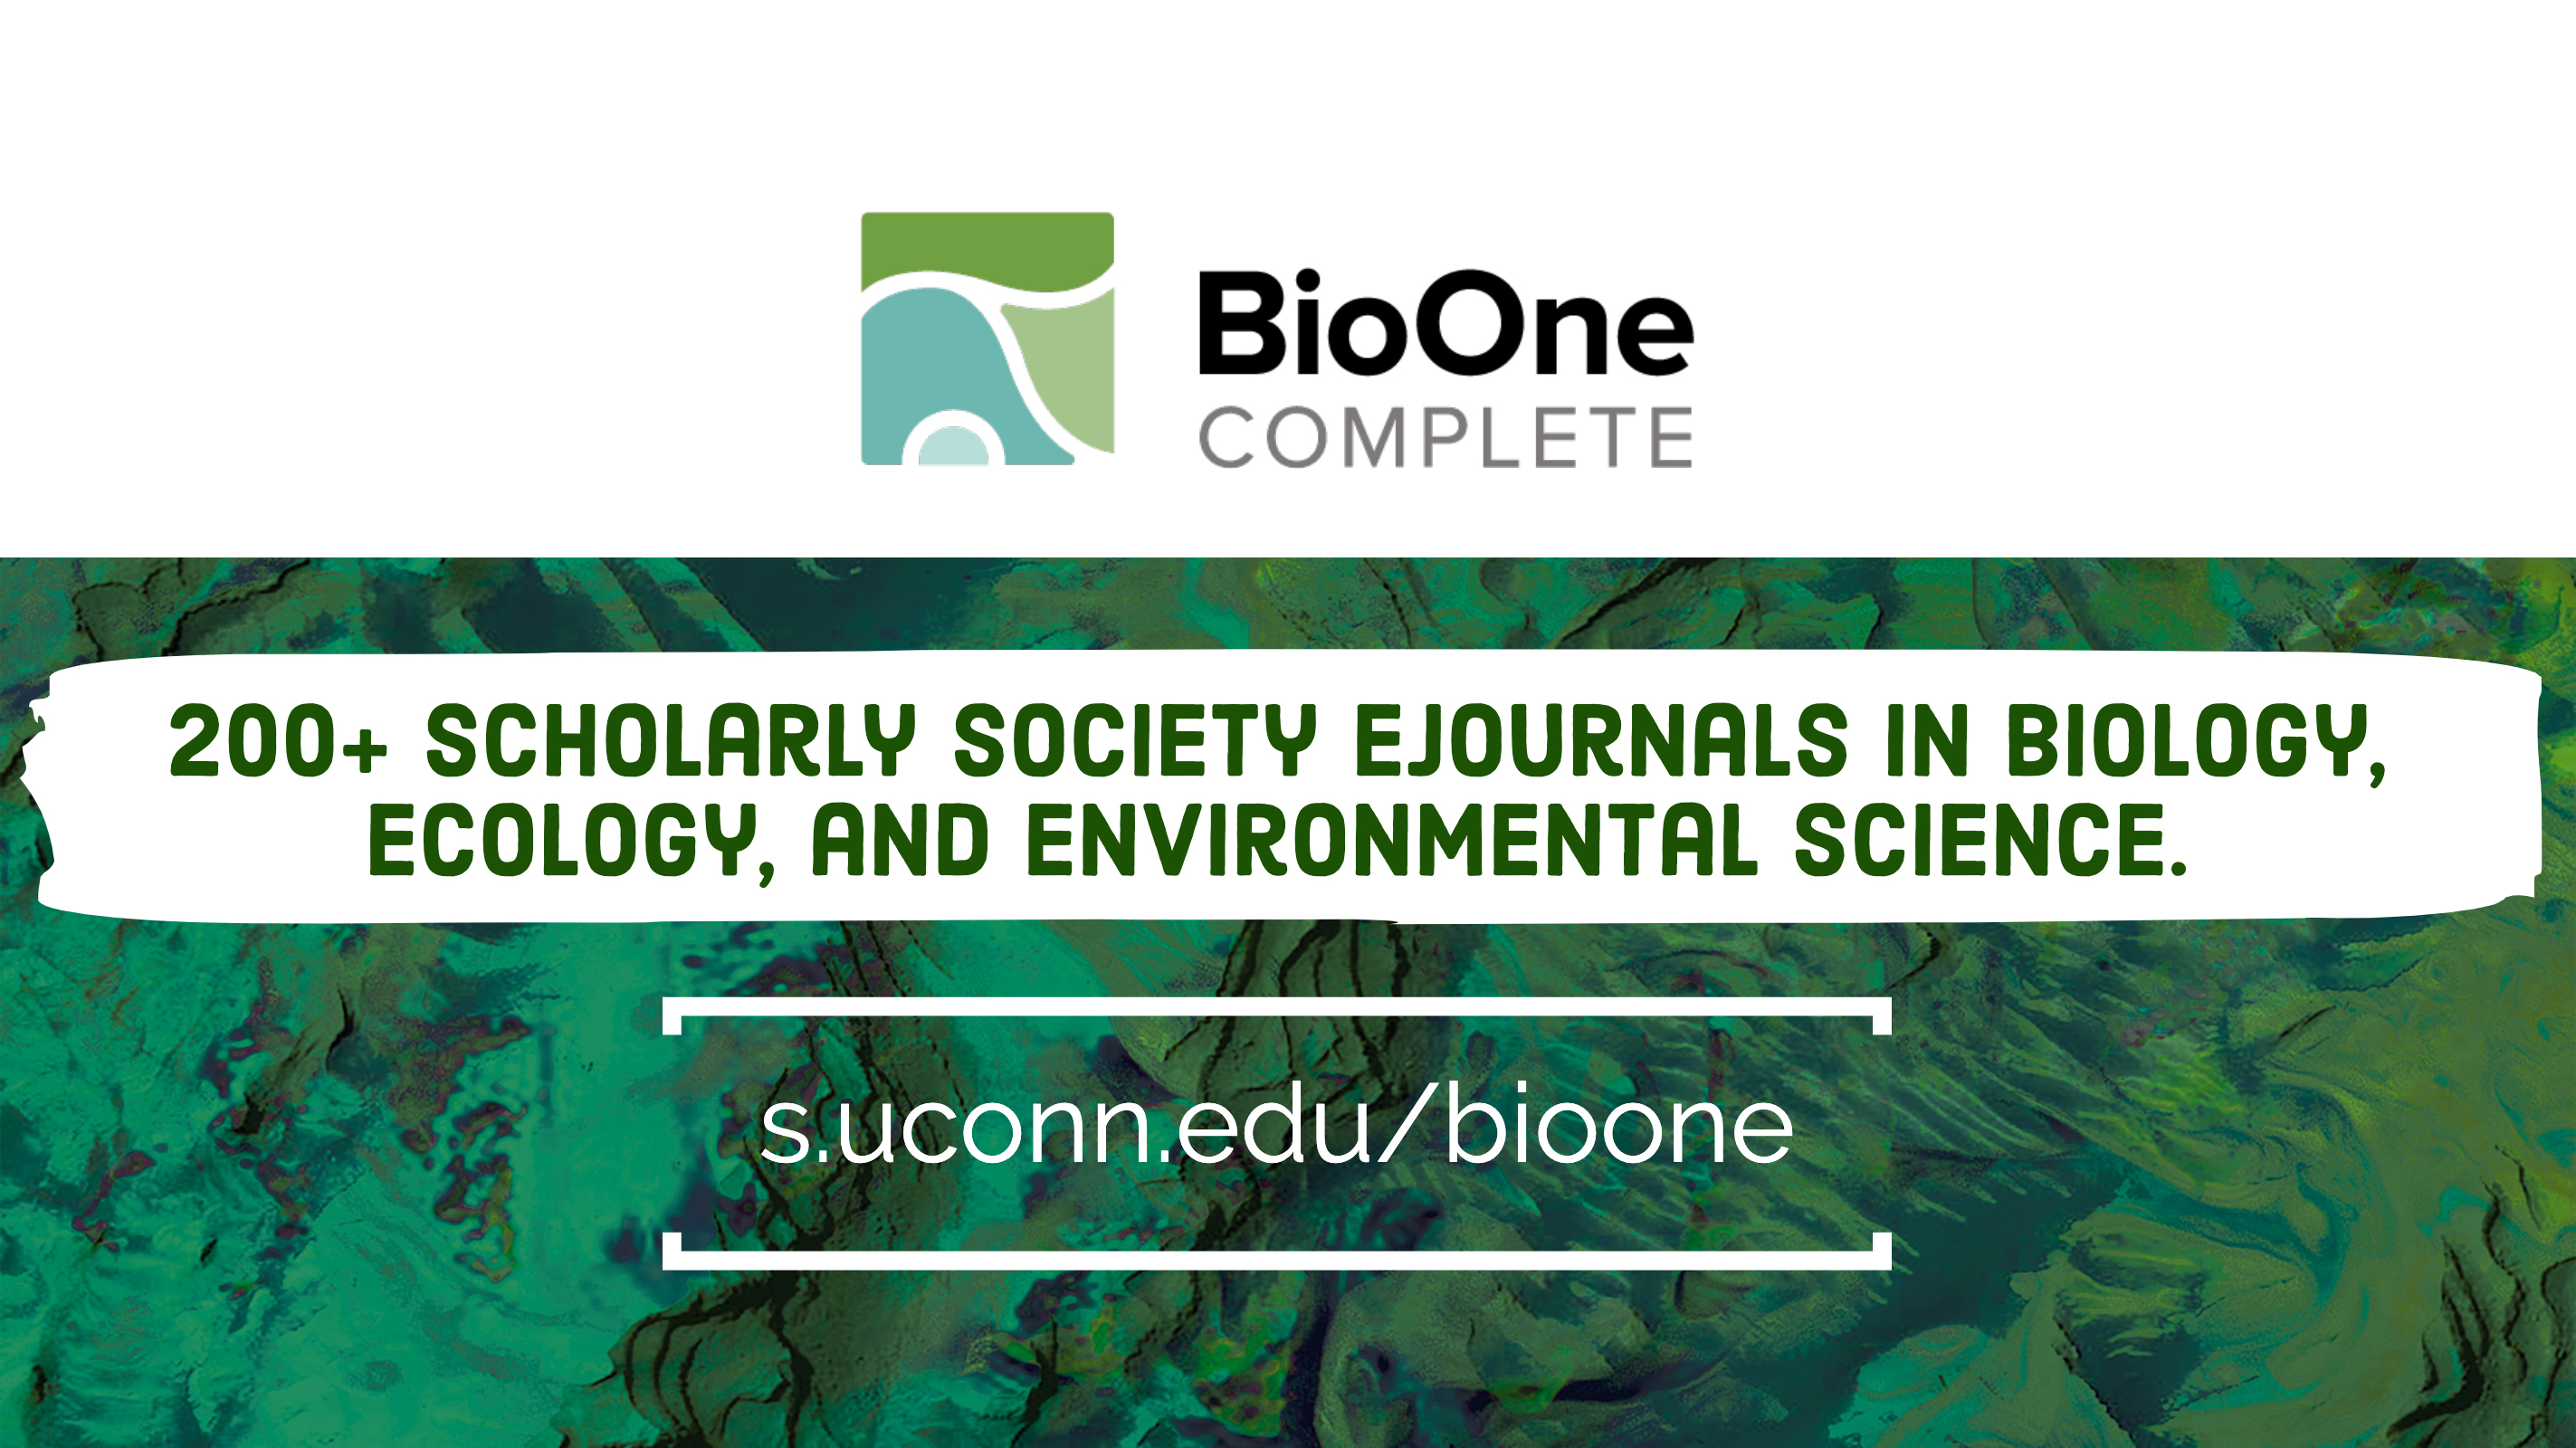 BioOne Complete 200+ scholarly society ejournals in biology, ecology, and environmental science. s.uconn.edu/bioone